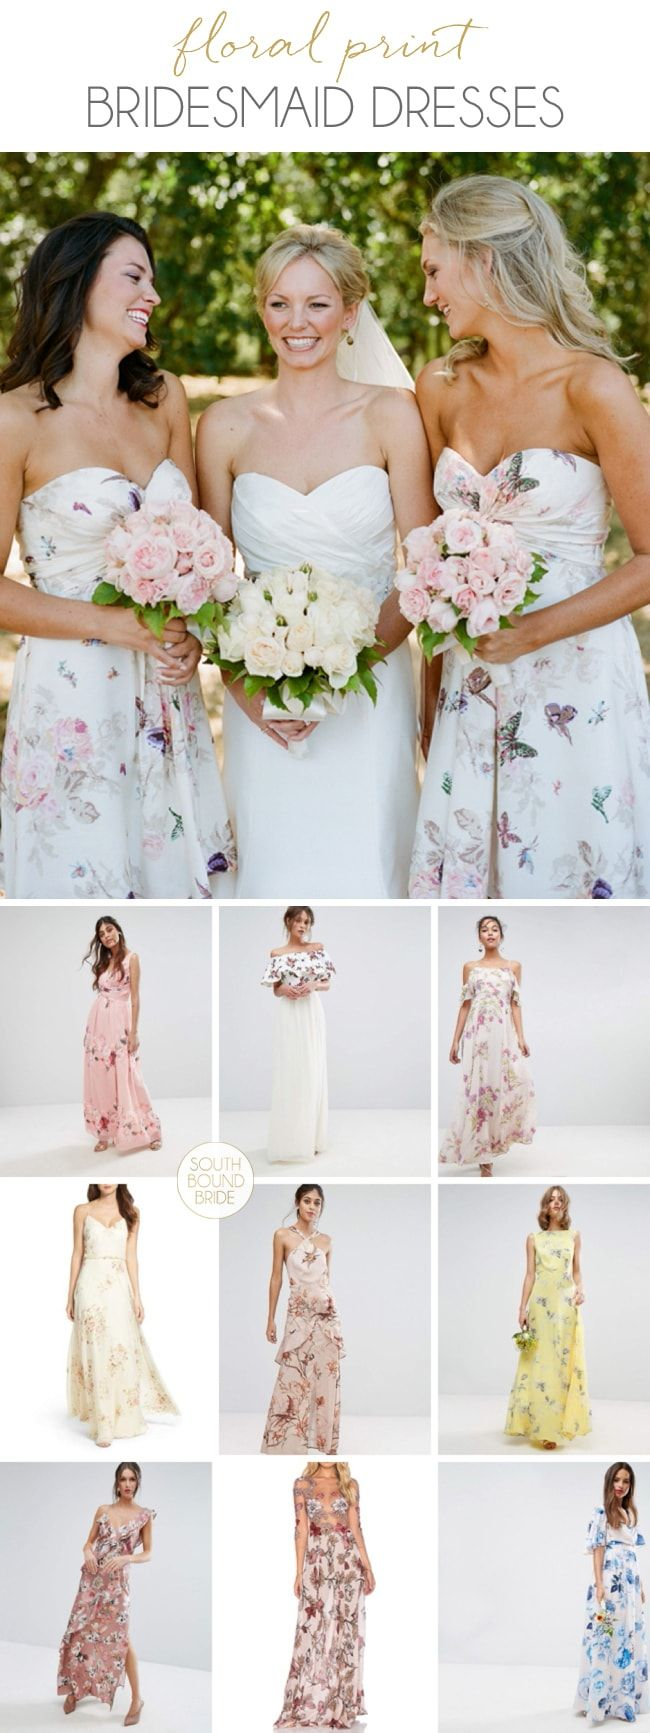 Floral print wedding dresses  Get the Look Floral Print Bridesmaid Dresses  Printed bridesmaid